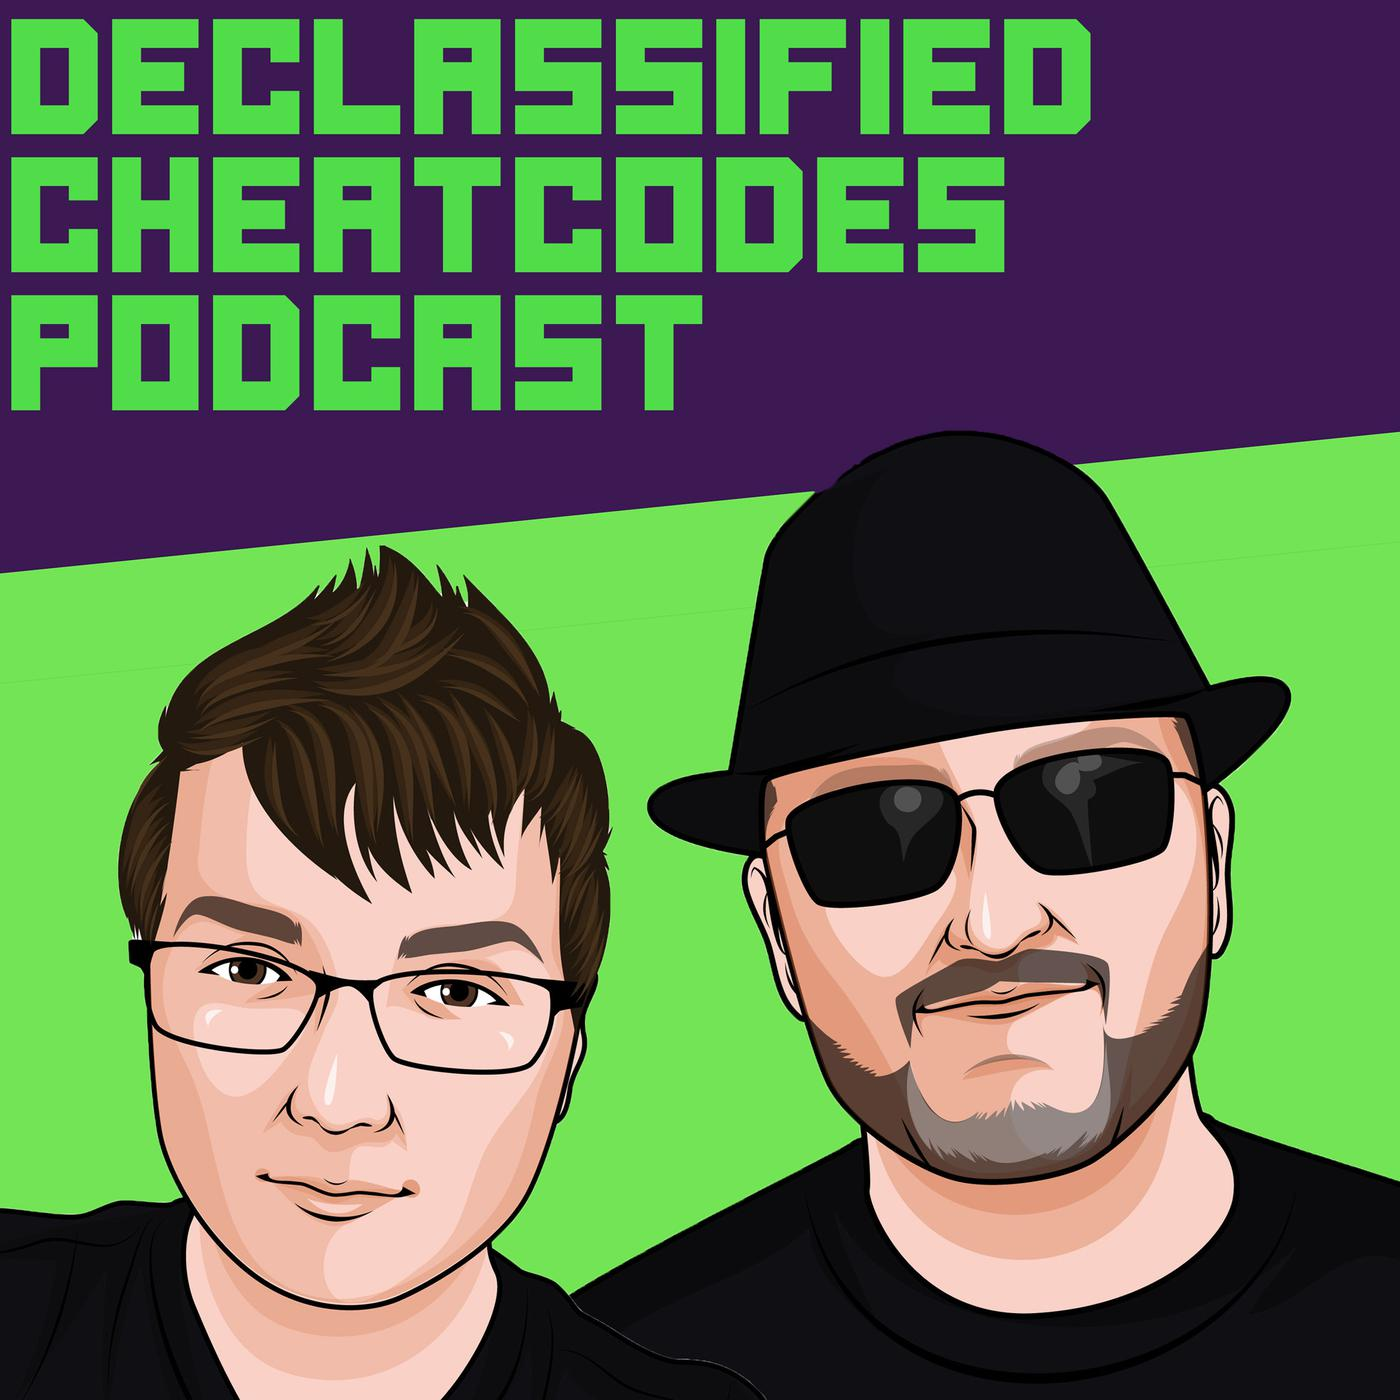 Declassified Cheatcodes Podcast - Circlewinds Productions | Listen Notes